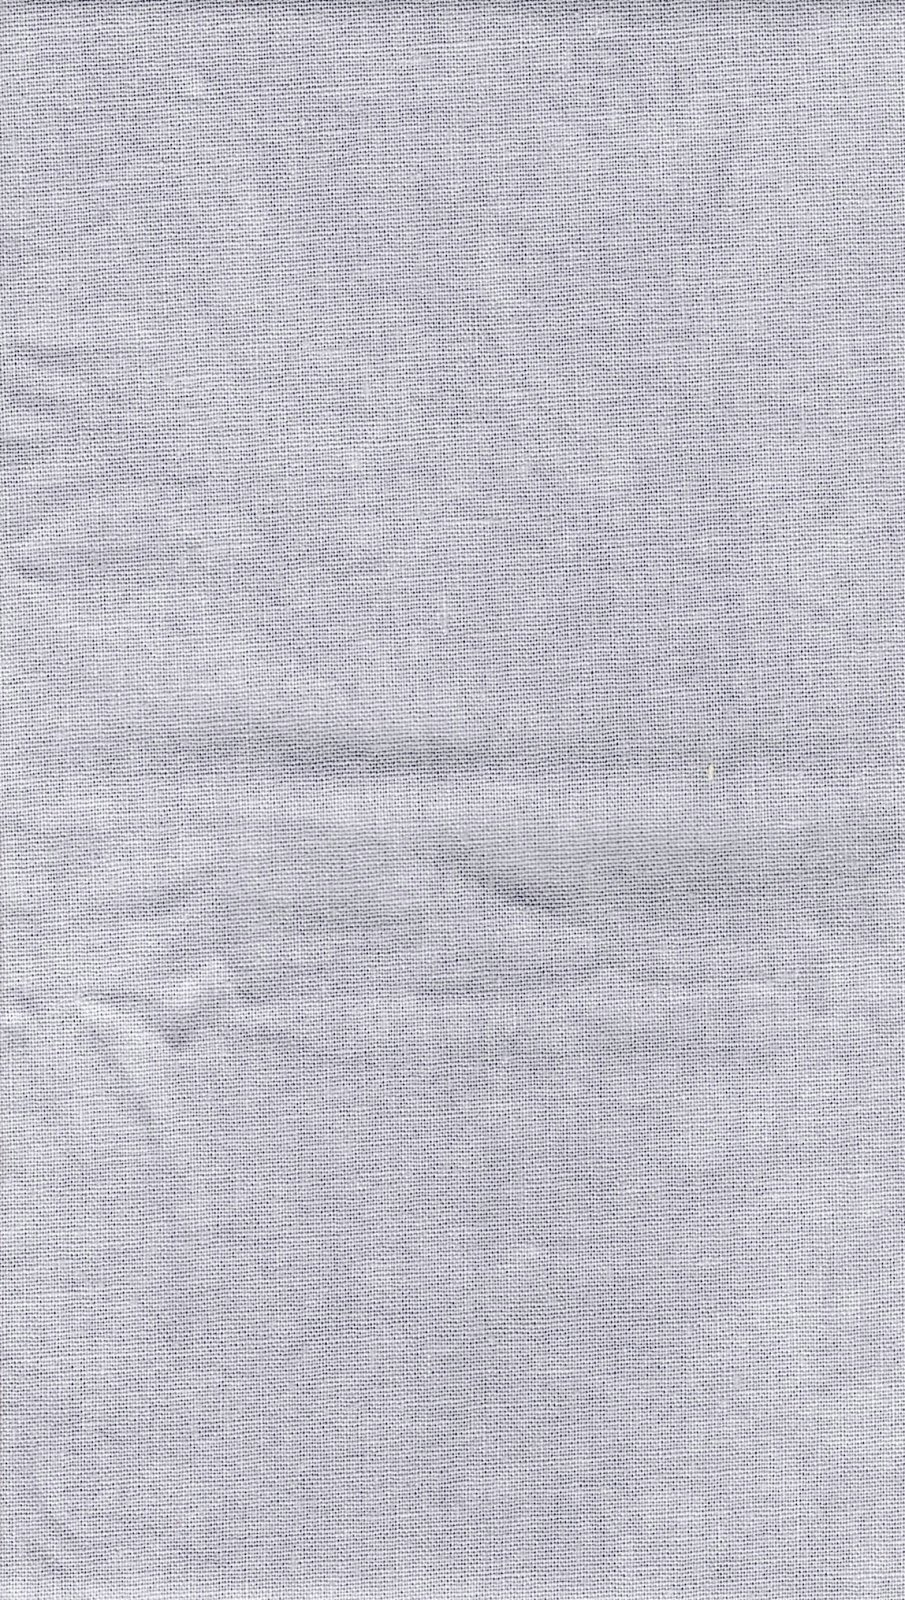 Stone Hand-Dyed Linen Fat Quarter